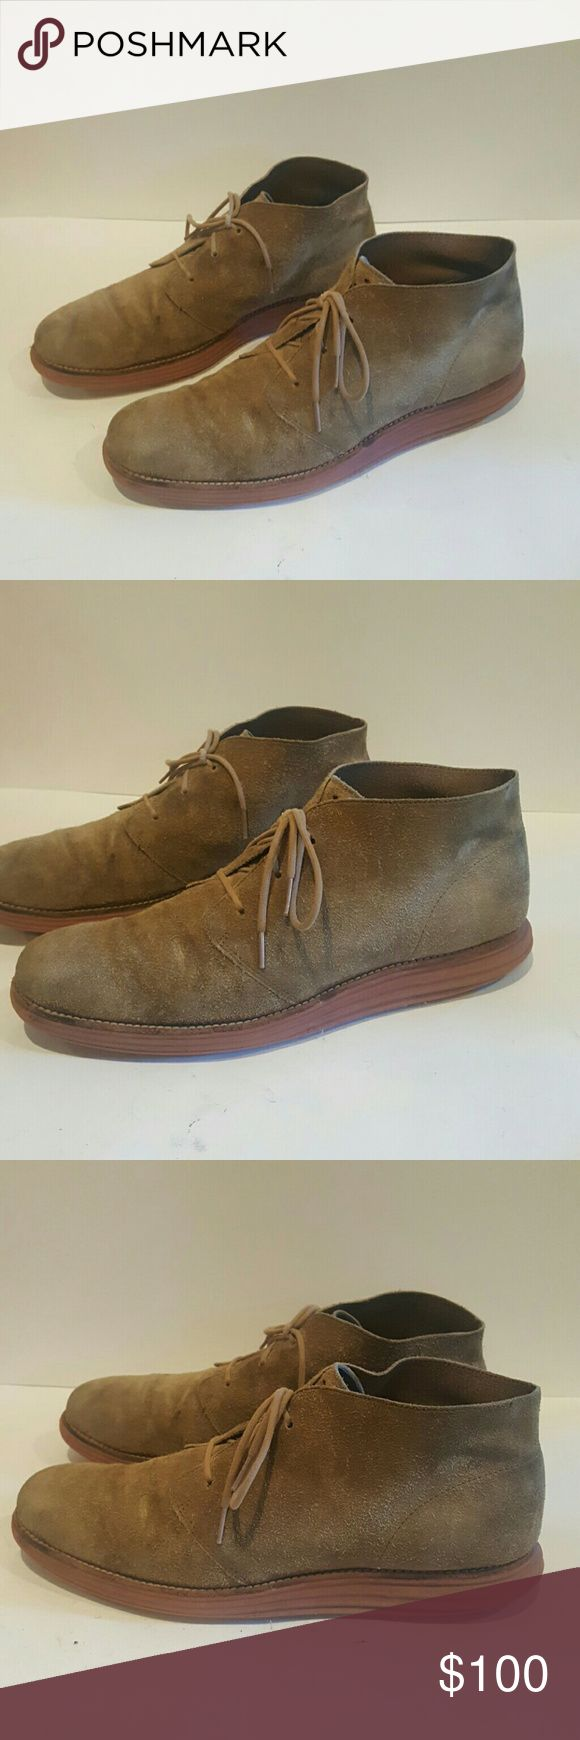 COLE HAAN LUNARGRAND CHUKKA BOOT 11M COLE HAAN LUNARGRAND MENS DRESS SHOES NIKE X COLE HAAN SIZE 11M TAUPE BOOTS HIGH TOP TAN SUEDE KHAKI COLOR BEAUTIFUL GUC PLENTY OF LIFE LEFT RARE COLLAB Cole Haan Shoes Chukka Boots